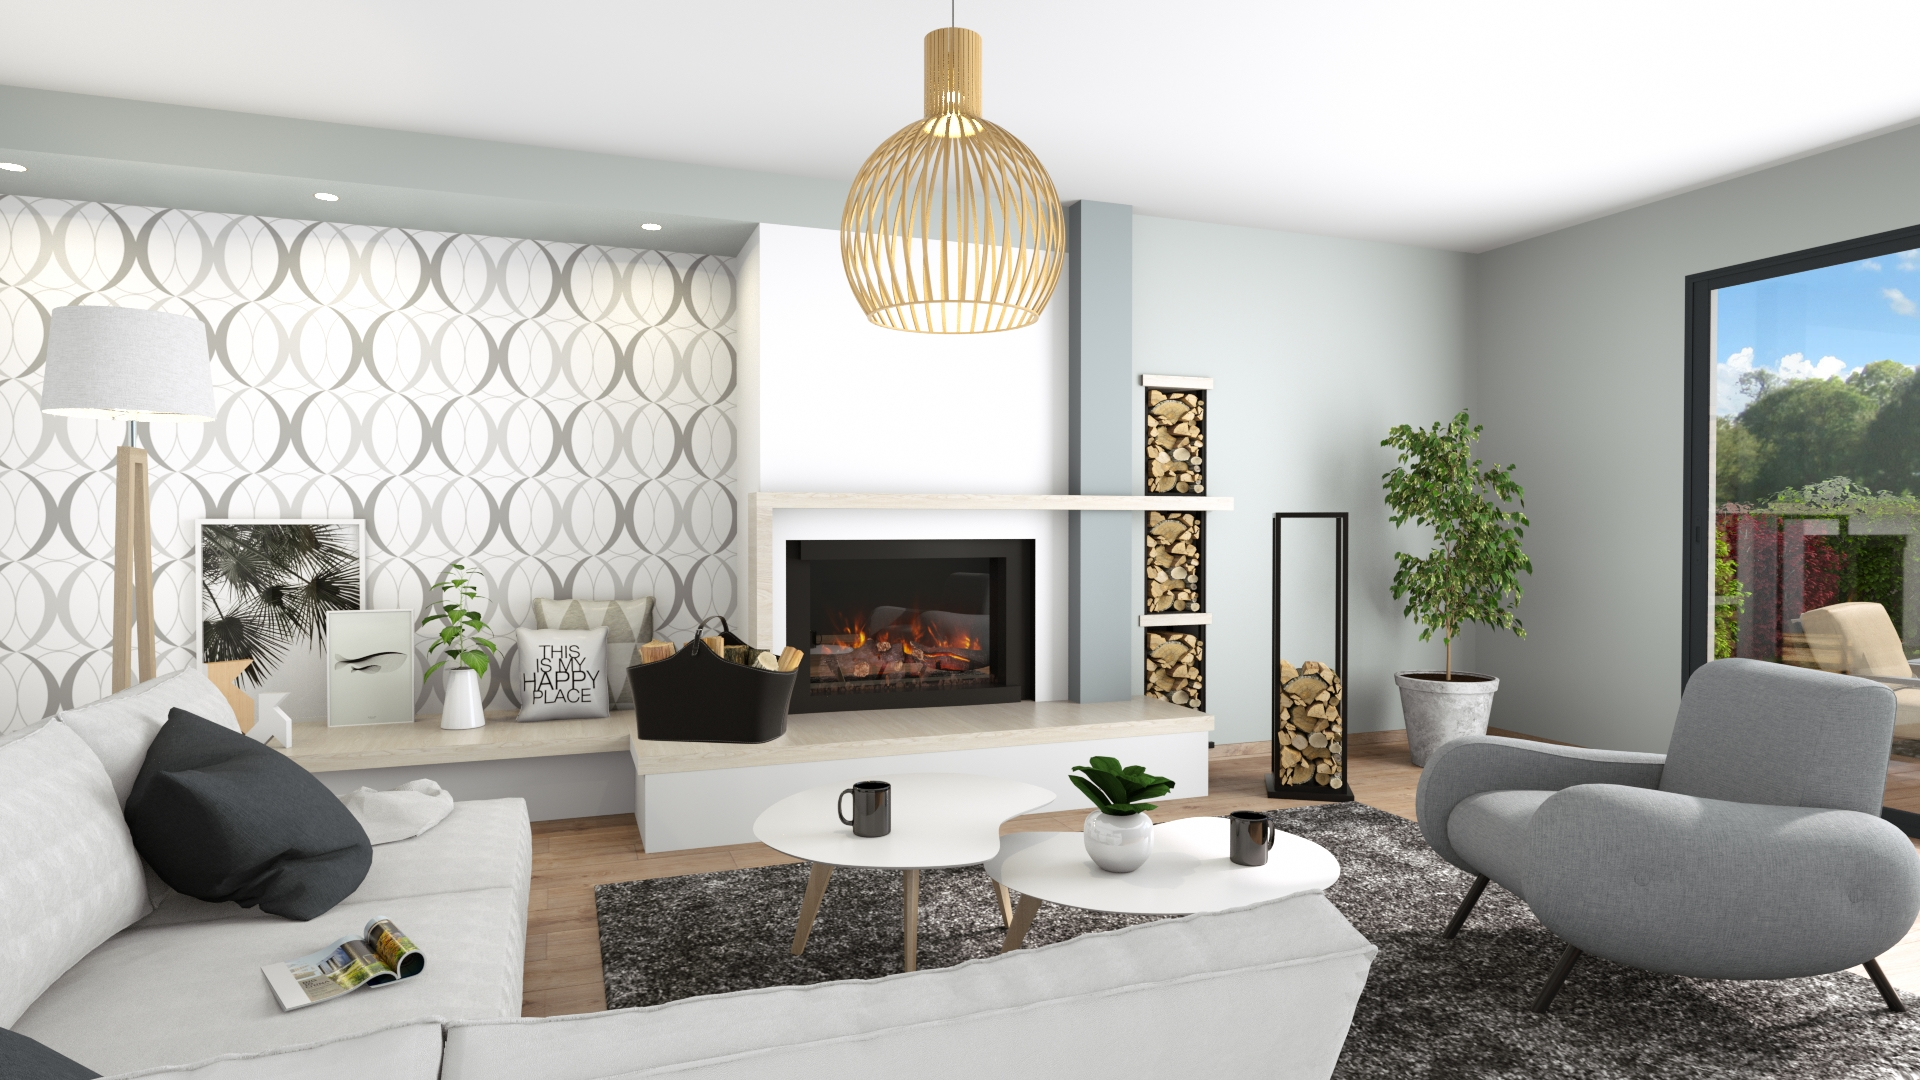 3D Home Interior Layout With Fireplace